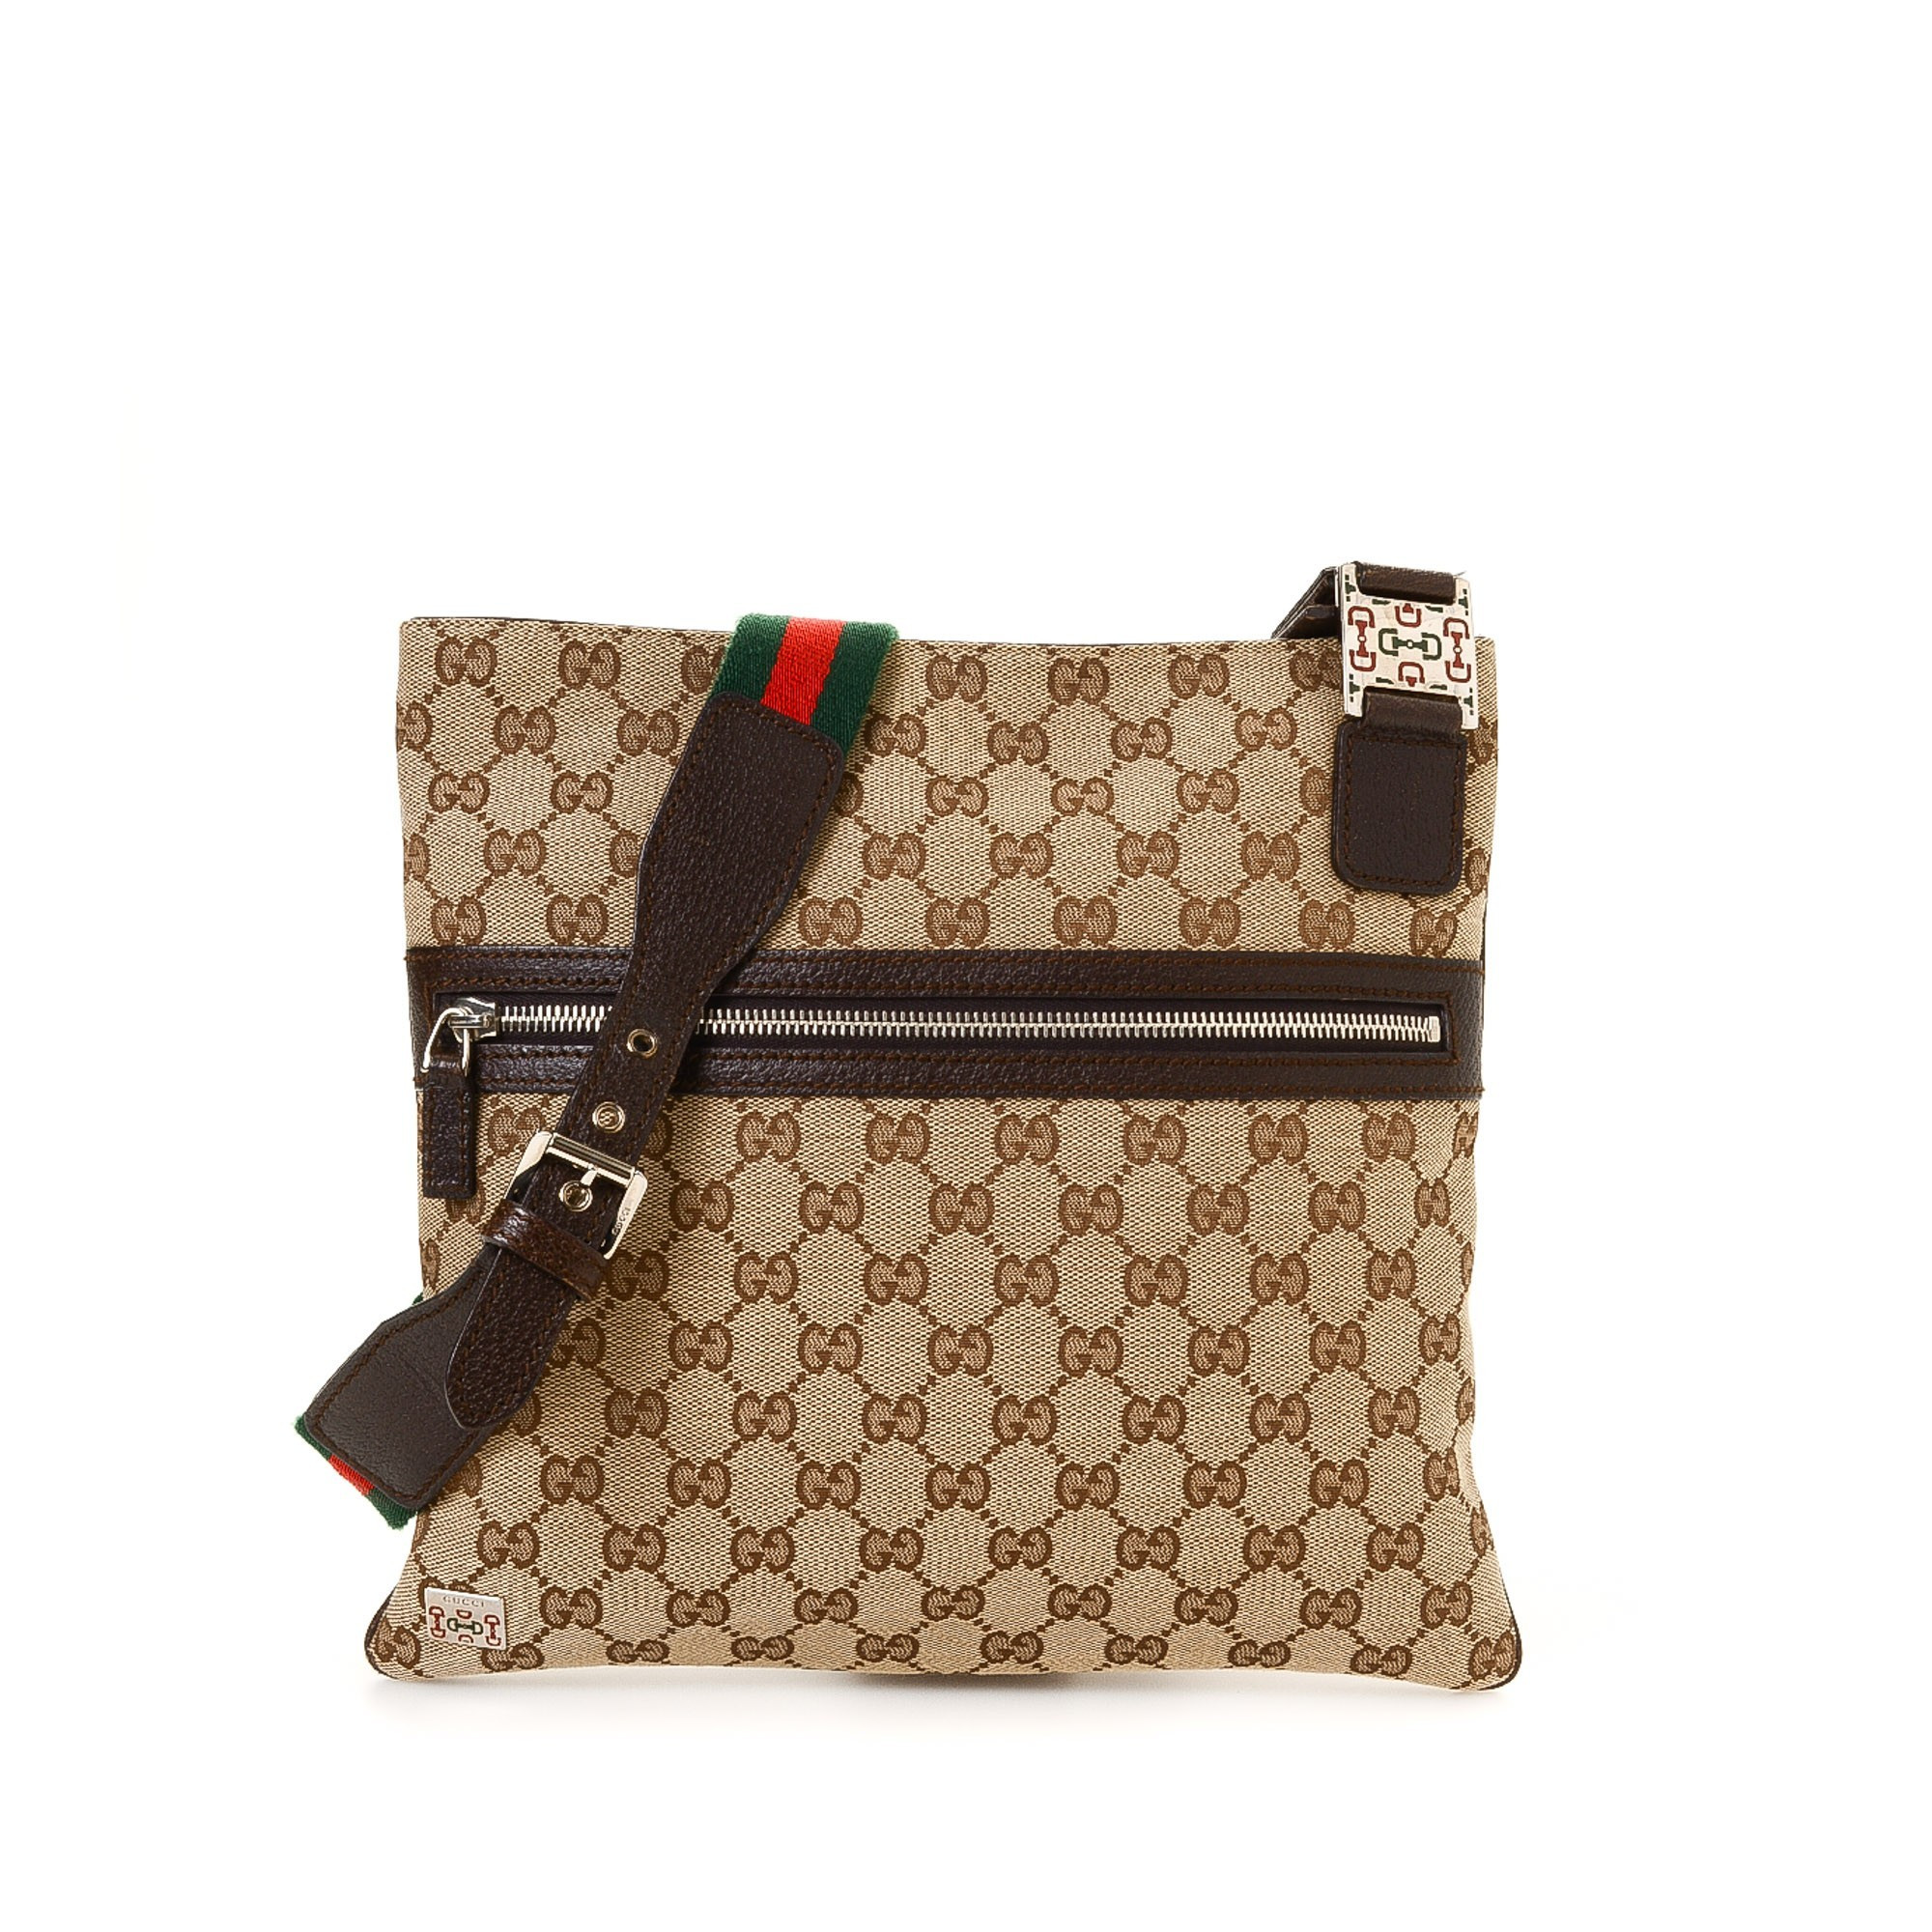 a2a55a5a4053 Gucci Messenger Crossbody Handbags | Stanford Center for Opportunity ...